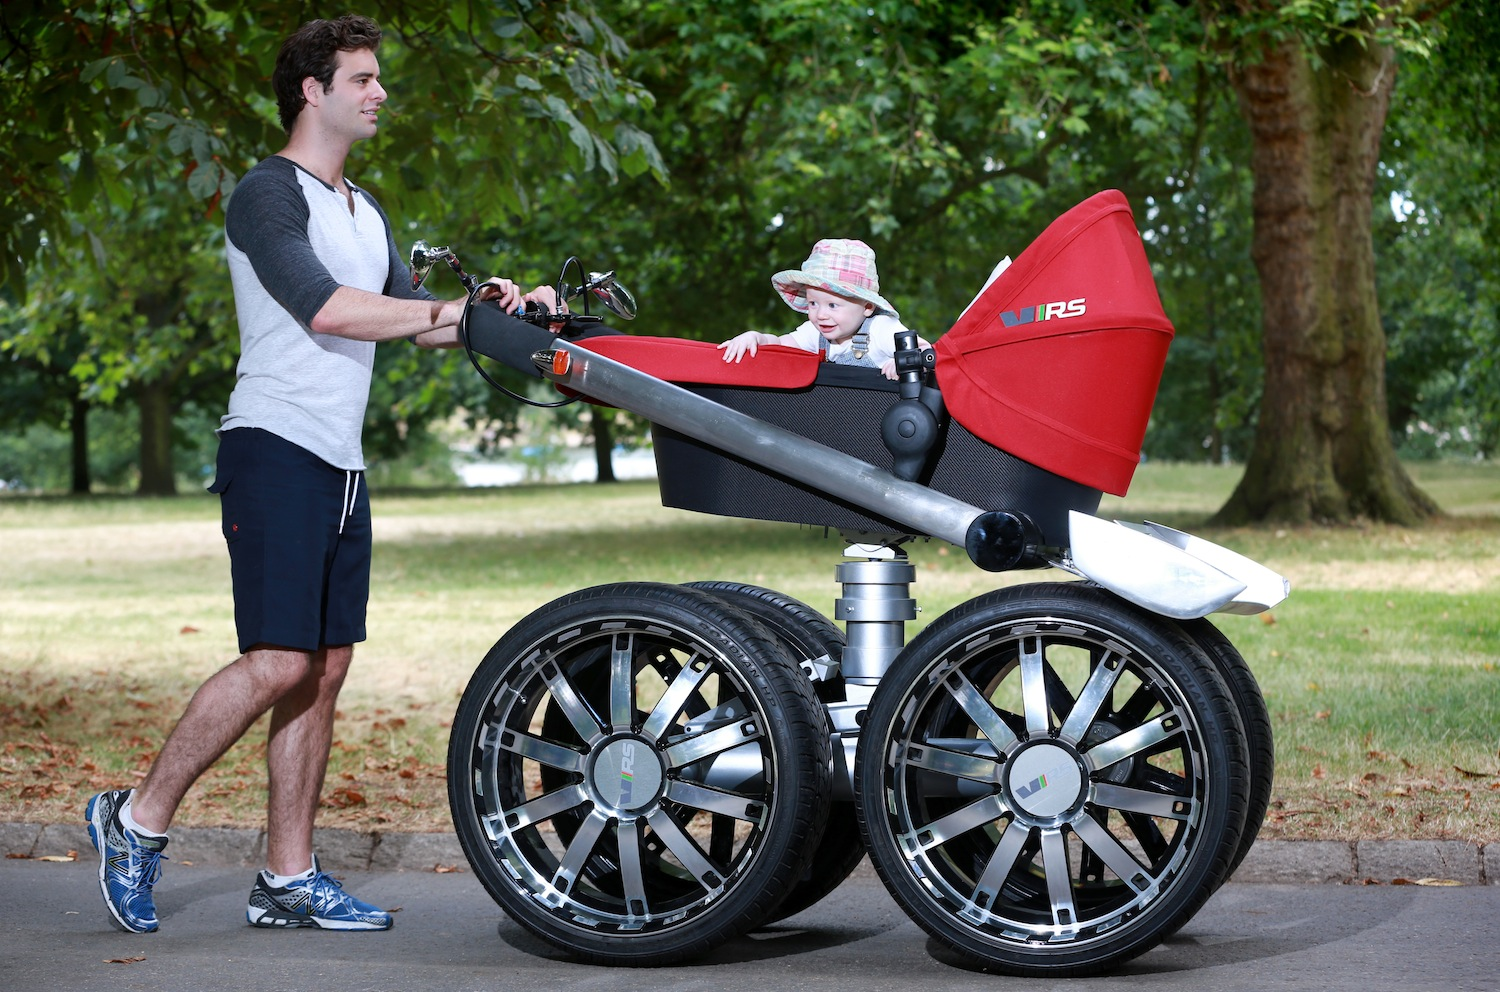 Skoda Vrs Mega Man Pram Concept on bmw car stroller